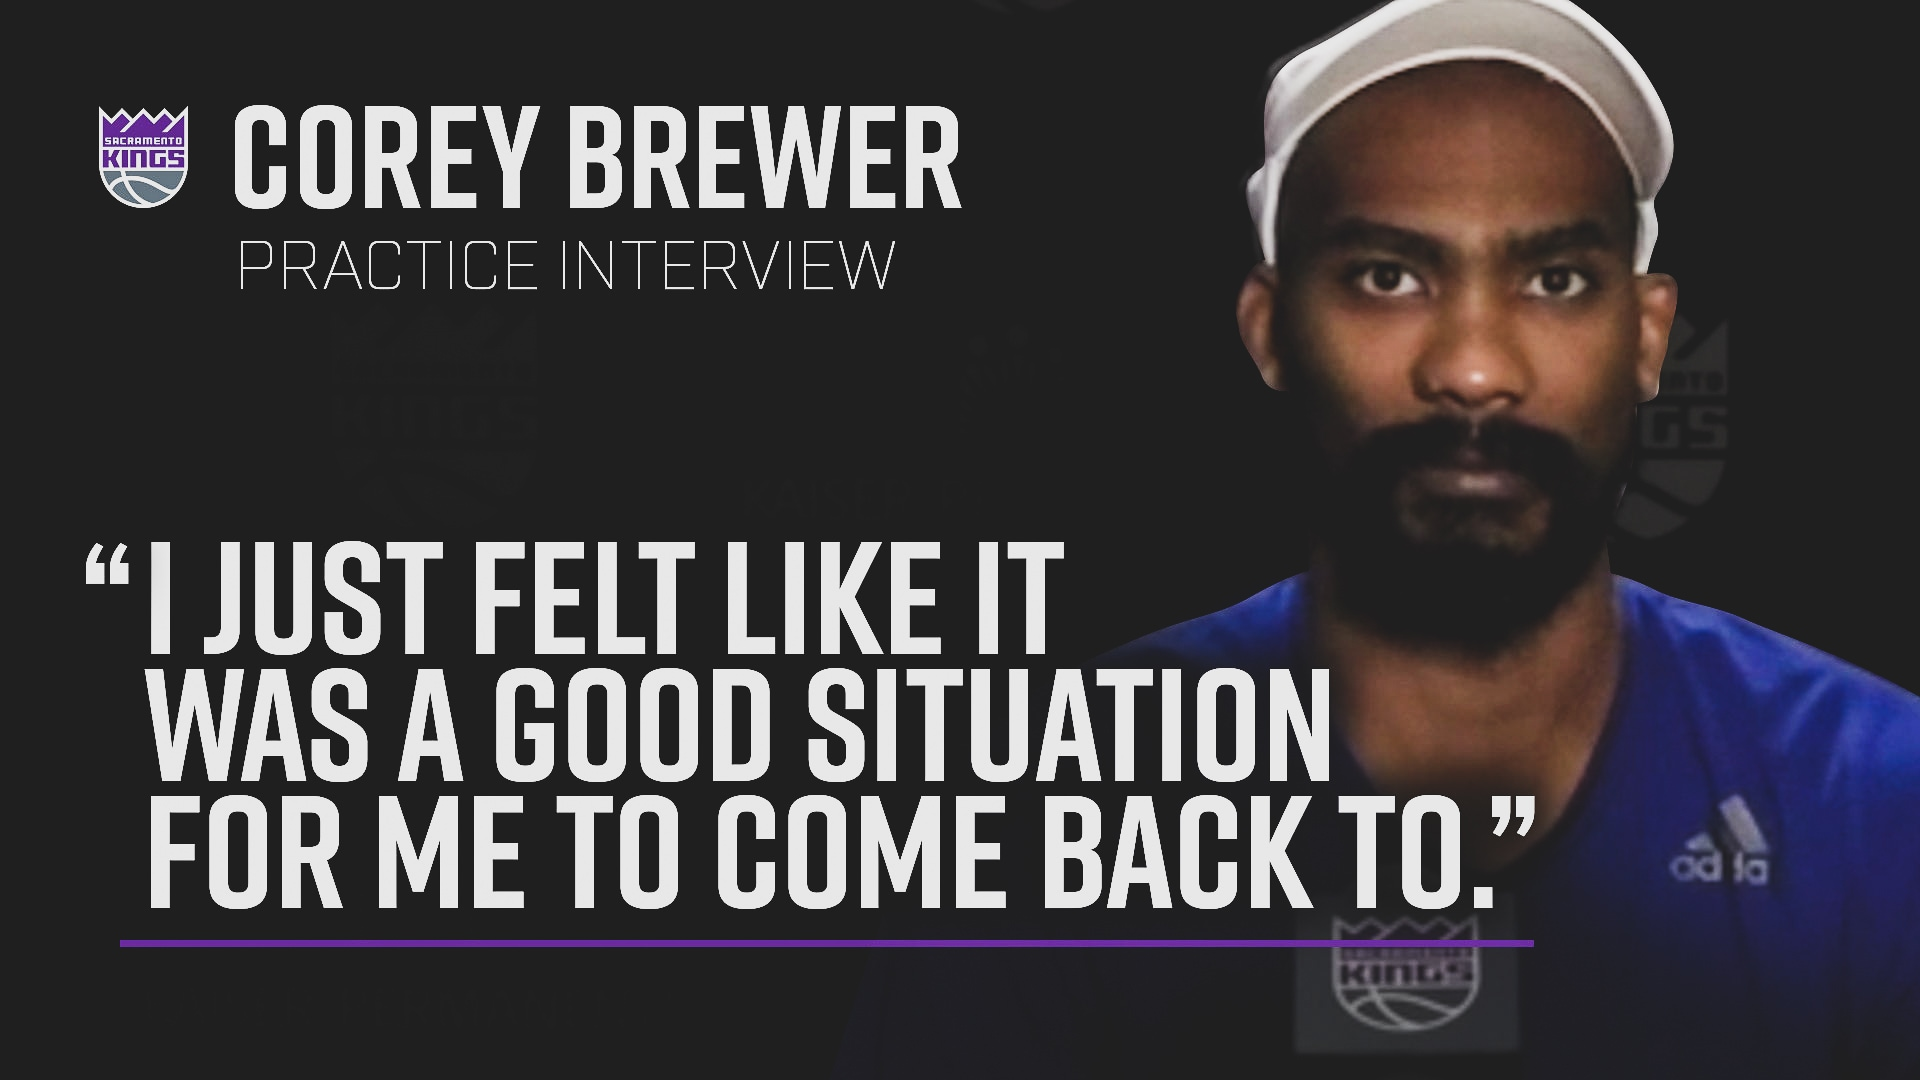 Brewer Excited to Rejoin Kings | Practice Interview 7.2.20